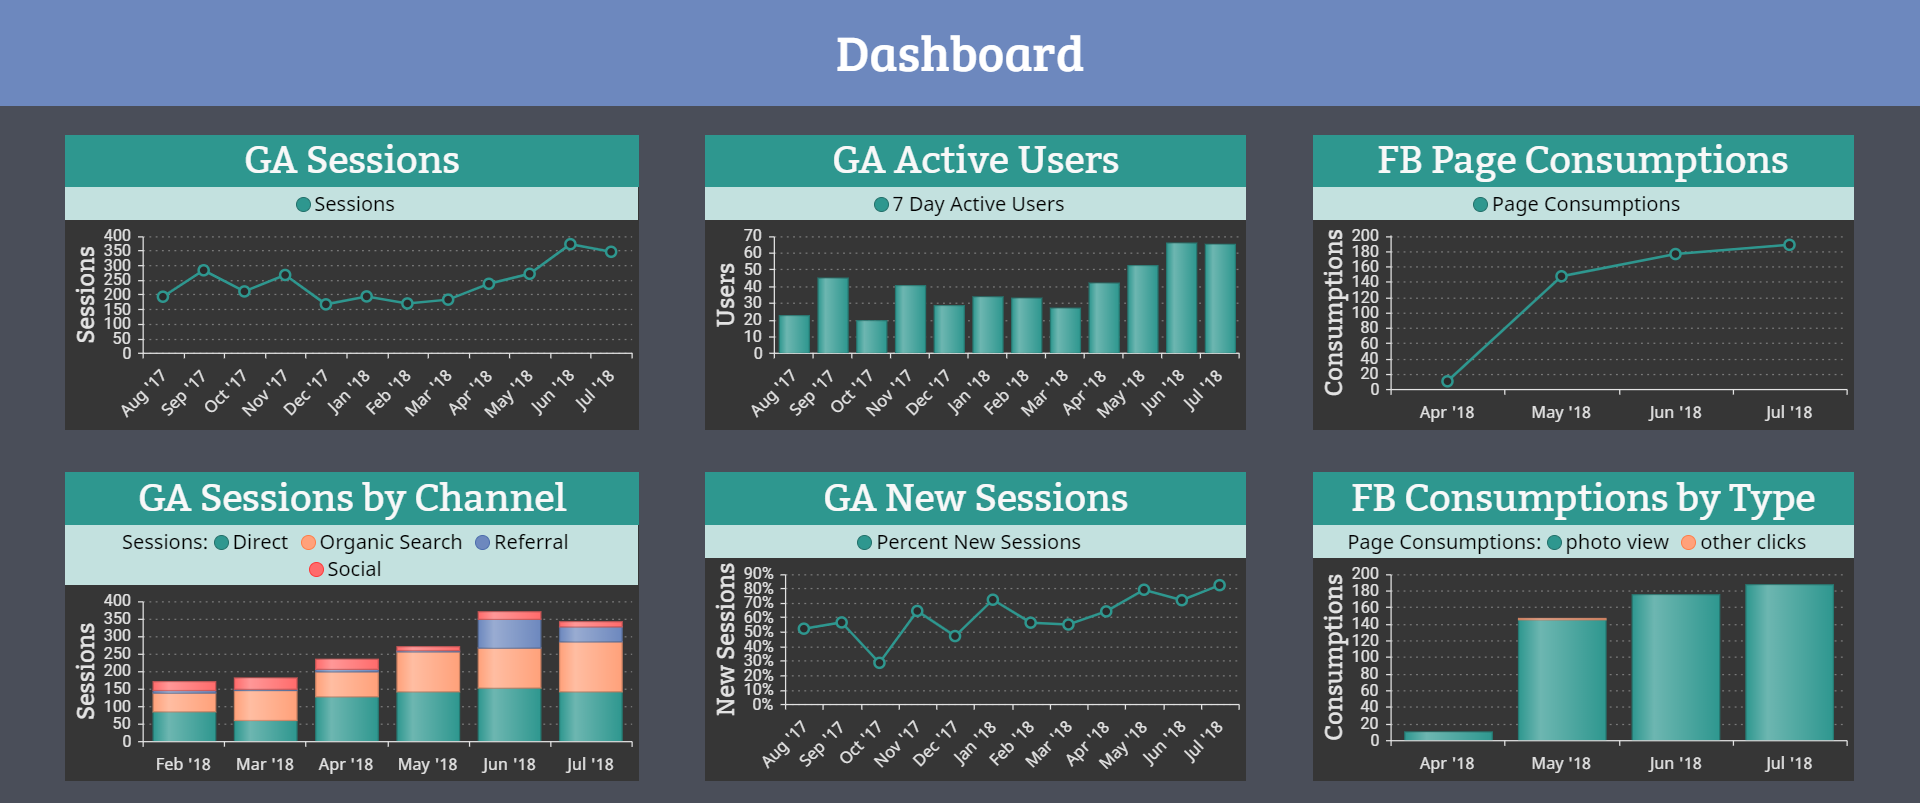 A screenshot showing that you can also create a dashboard layout within any slide of your Storyboard with live digital marketing data and analytics.